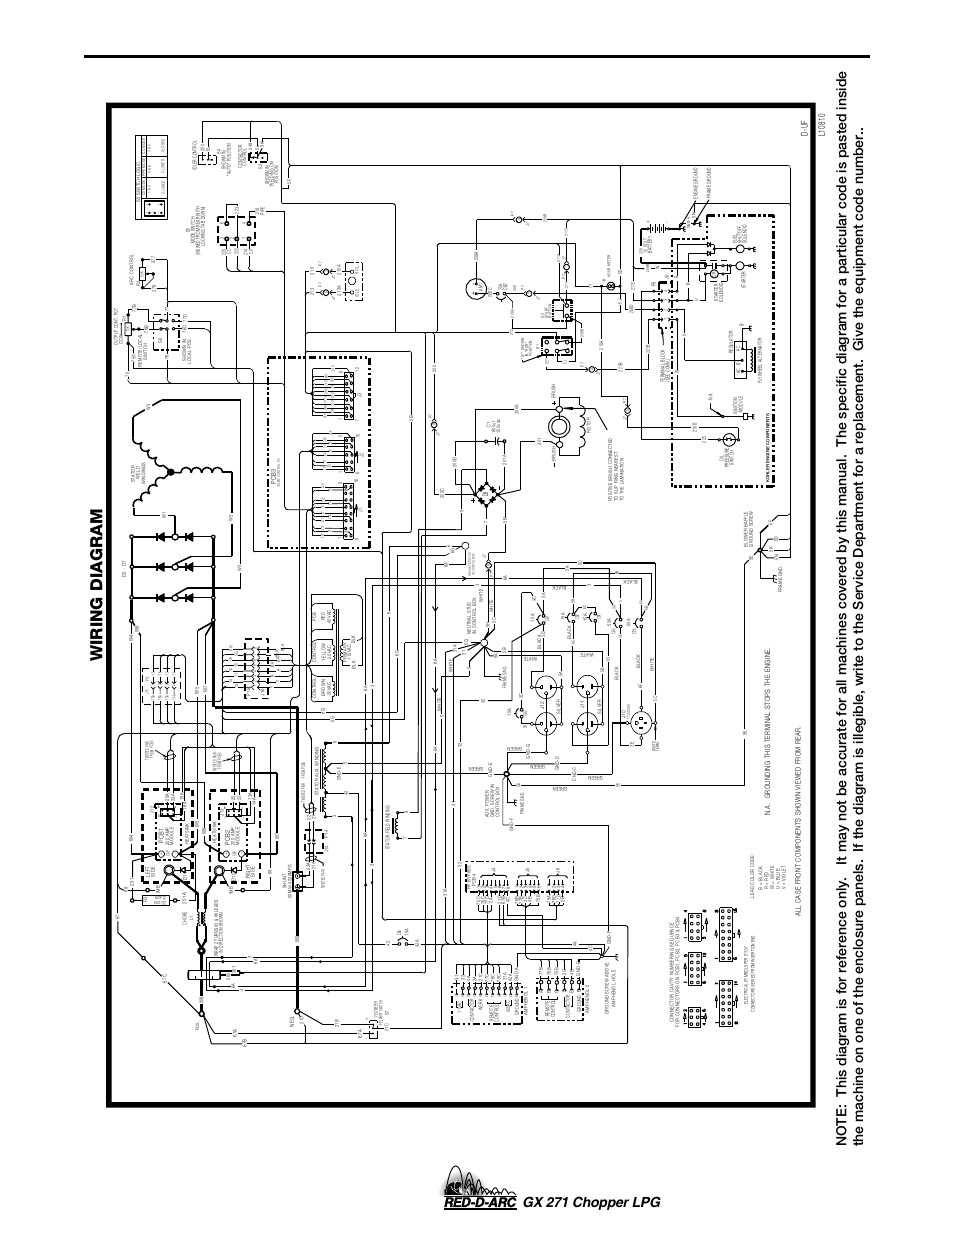 lincoln electric im635 red d arc gx 271chopper lpg page44 xo vision wiring diagram xo vision wiring harness at n-0.co